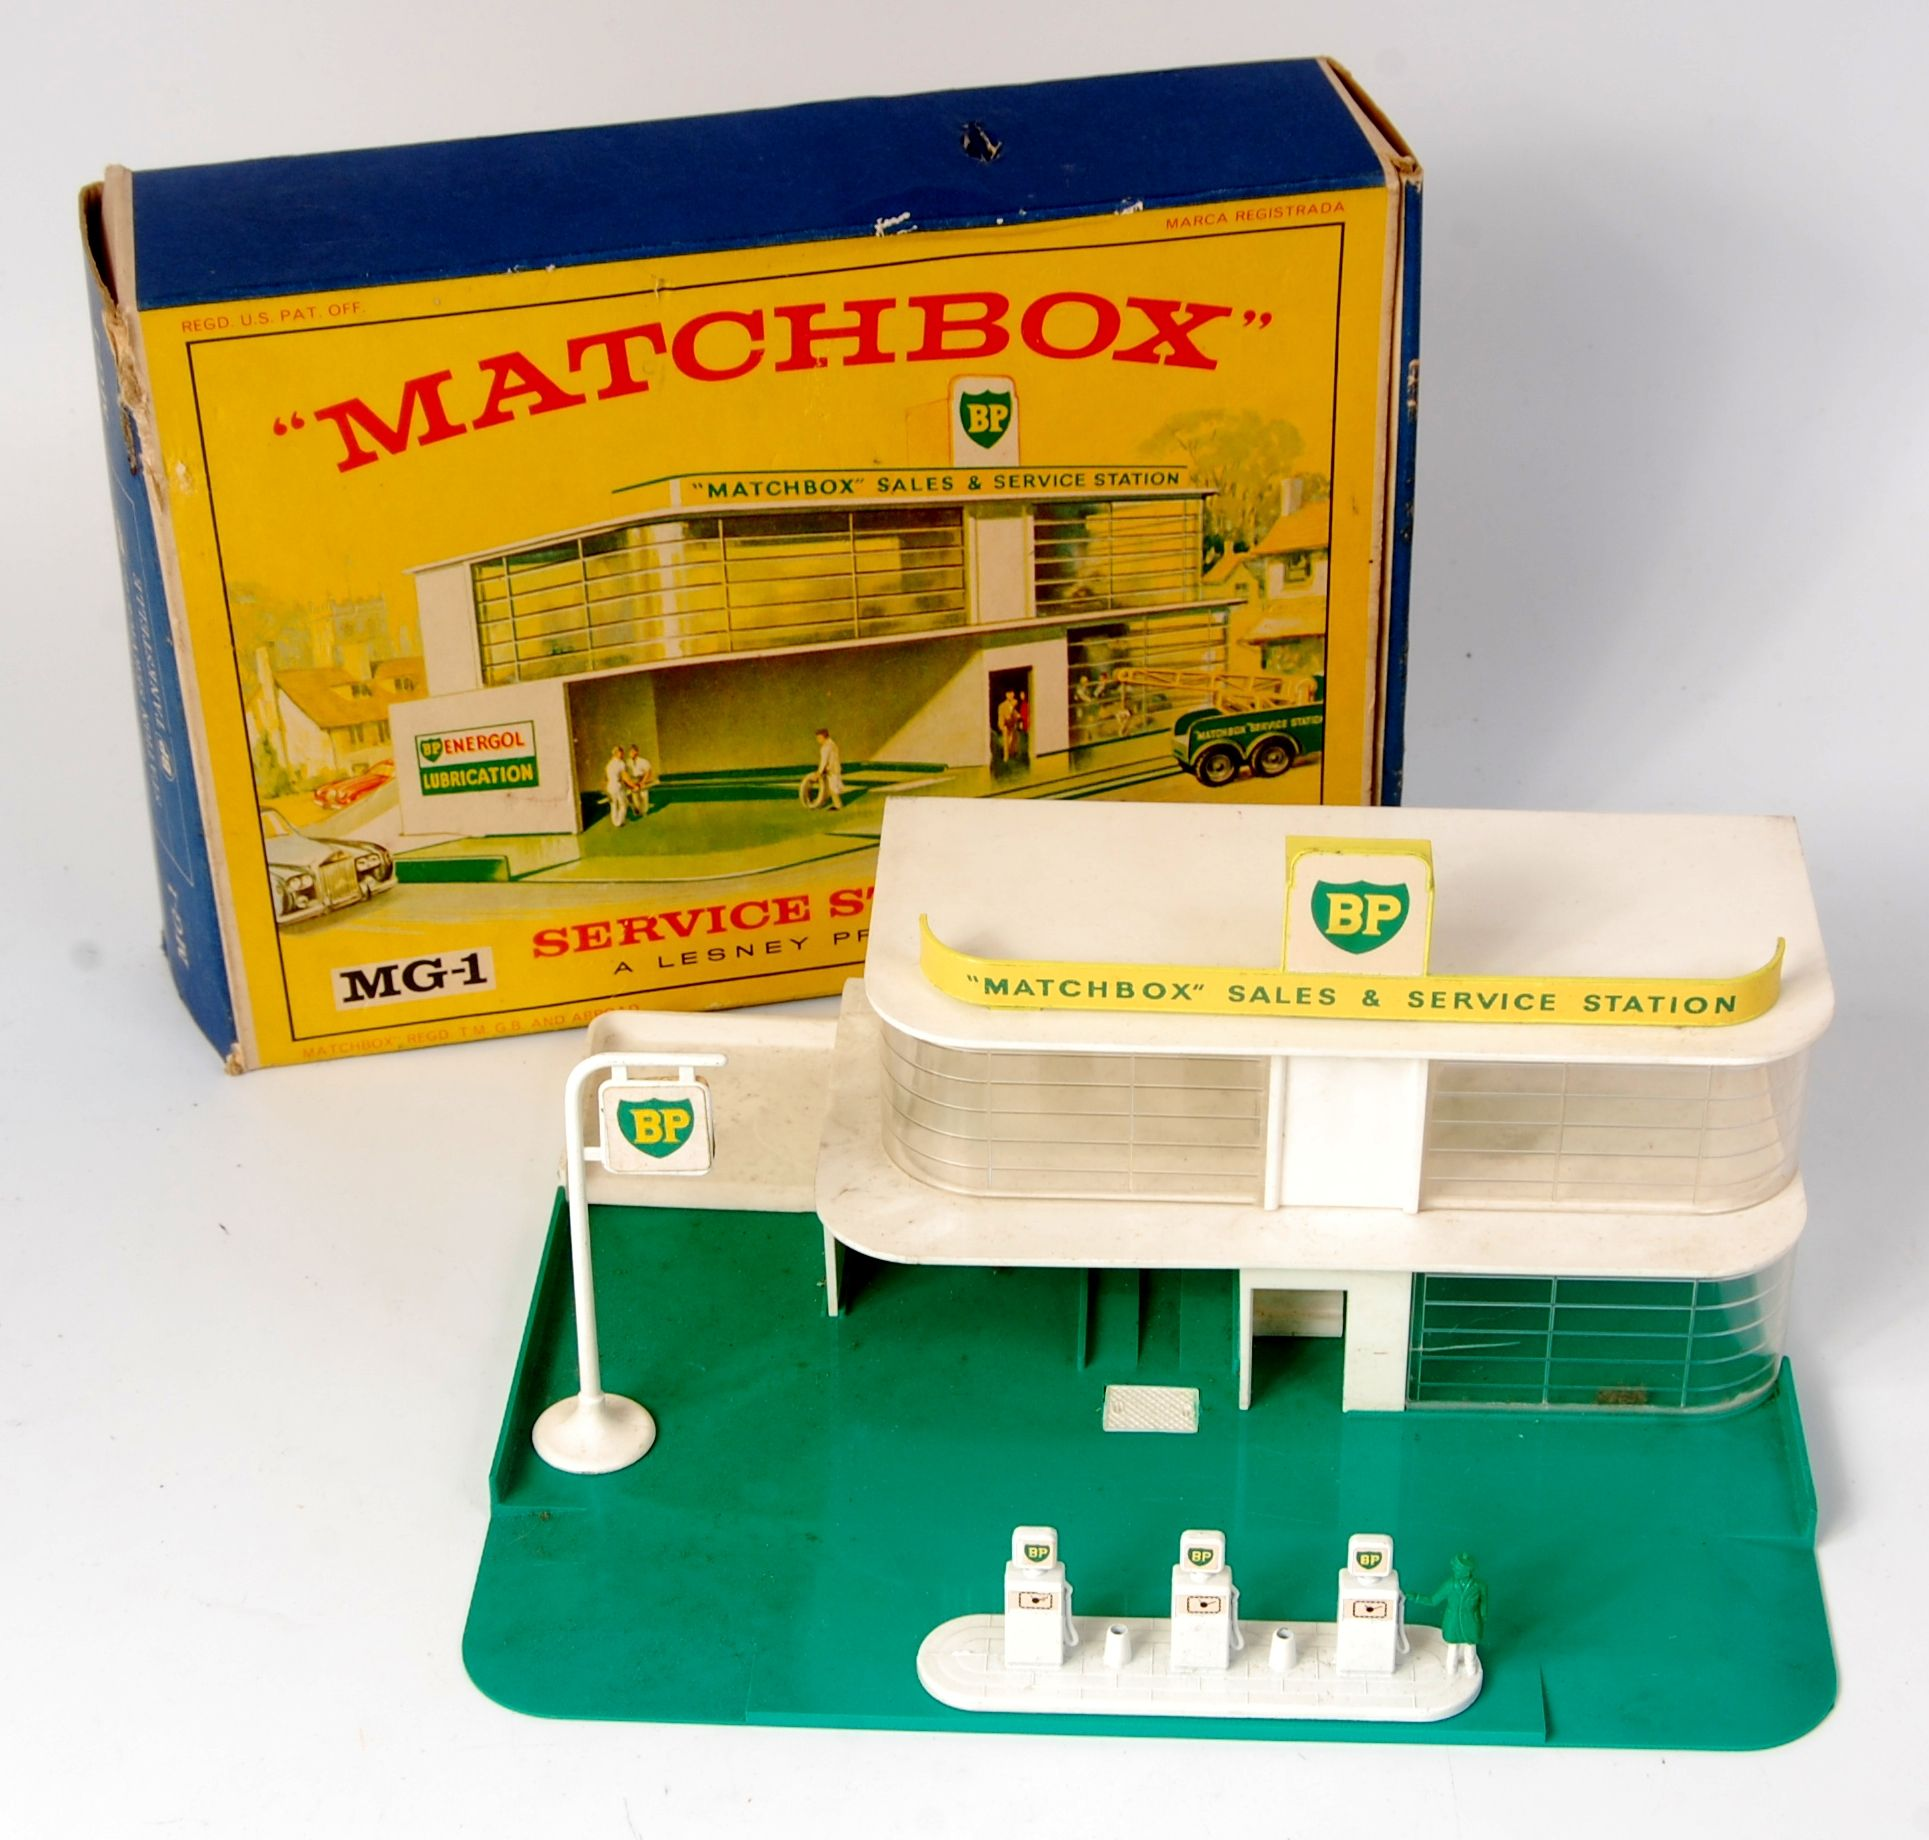 Lot 2391 Matchbox, MG1 BP sales and service station